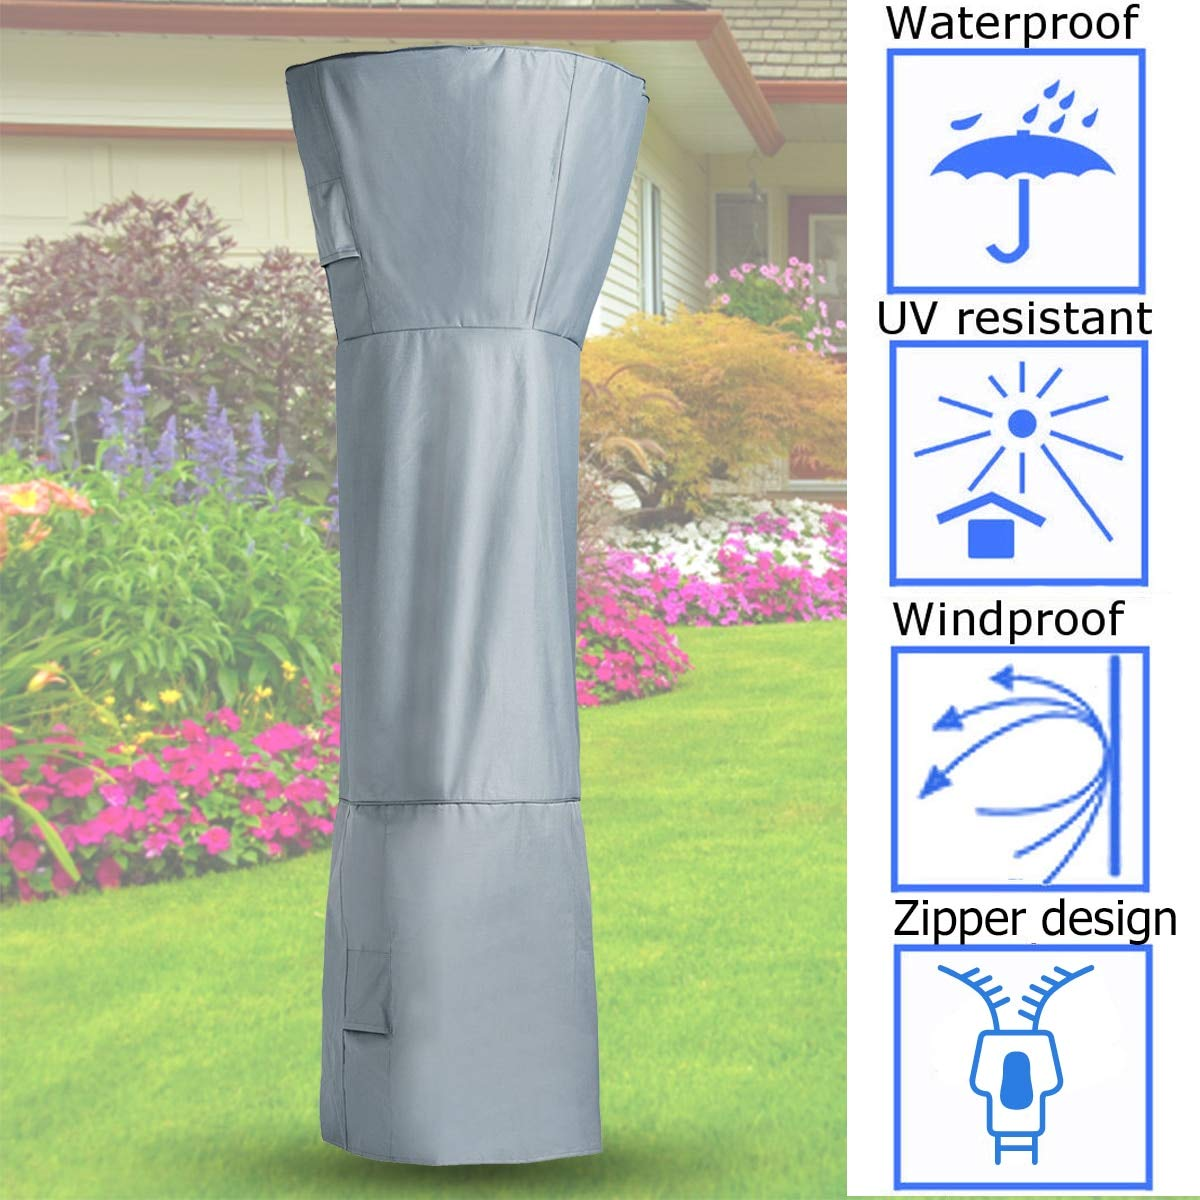 VQP Patio Heater Cover for Mushroom Shape Type Heater Waterproof Protector Cover Fabric Outdoor Home Garden 251cmx91cm by VQP